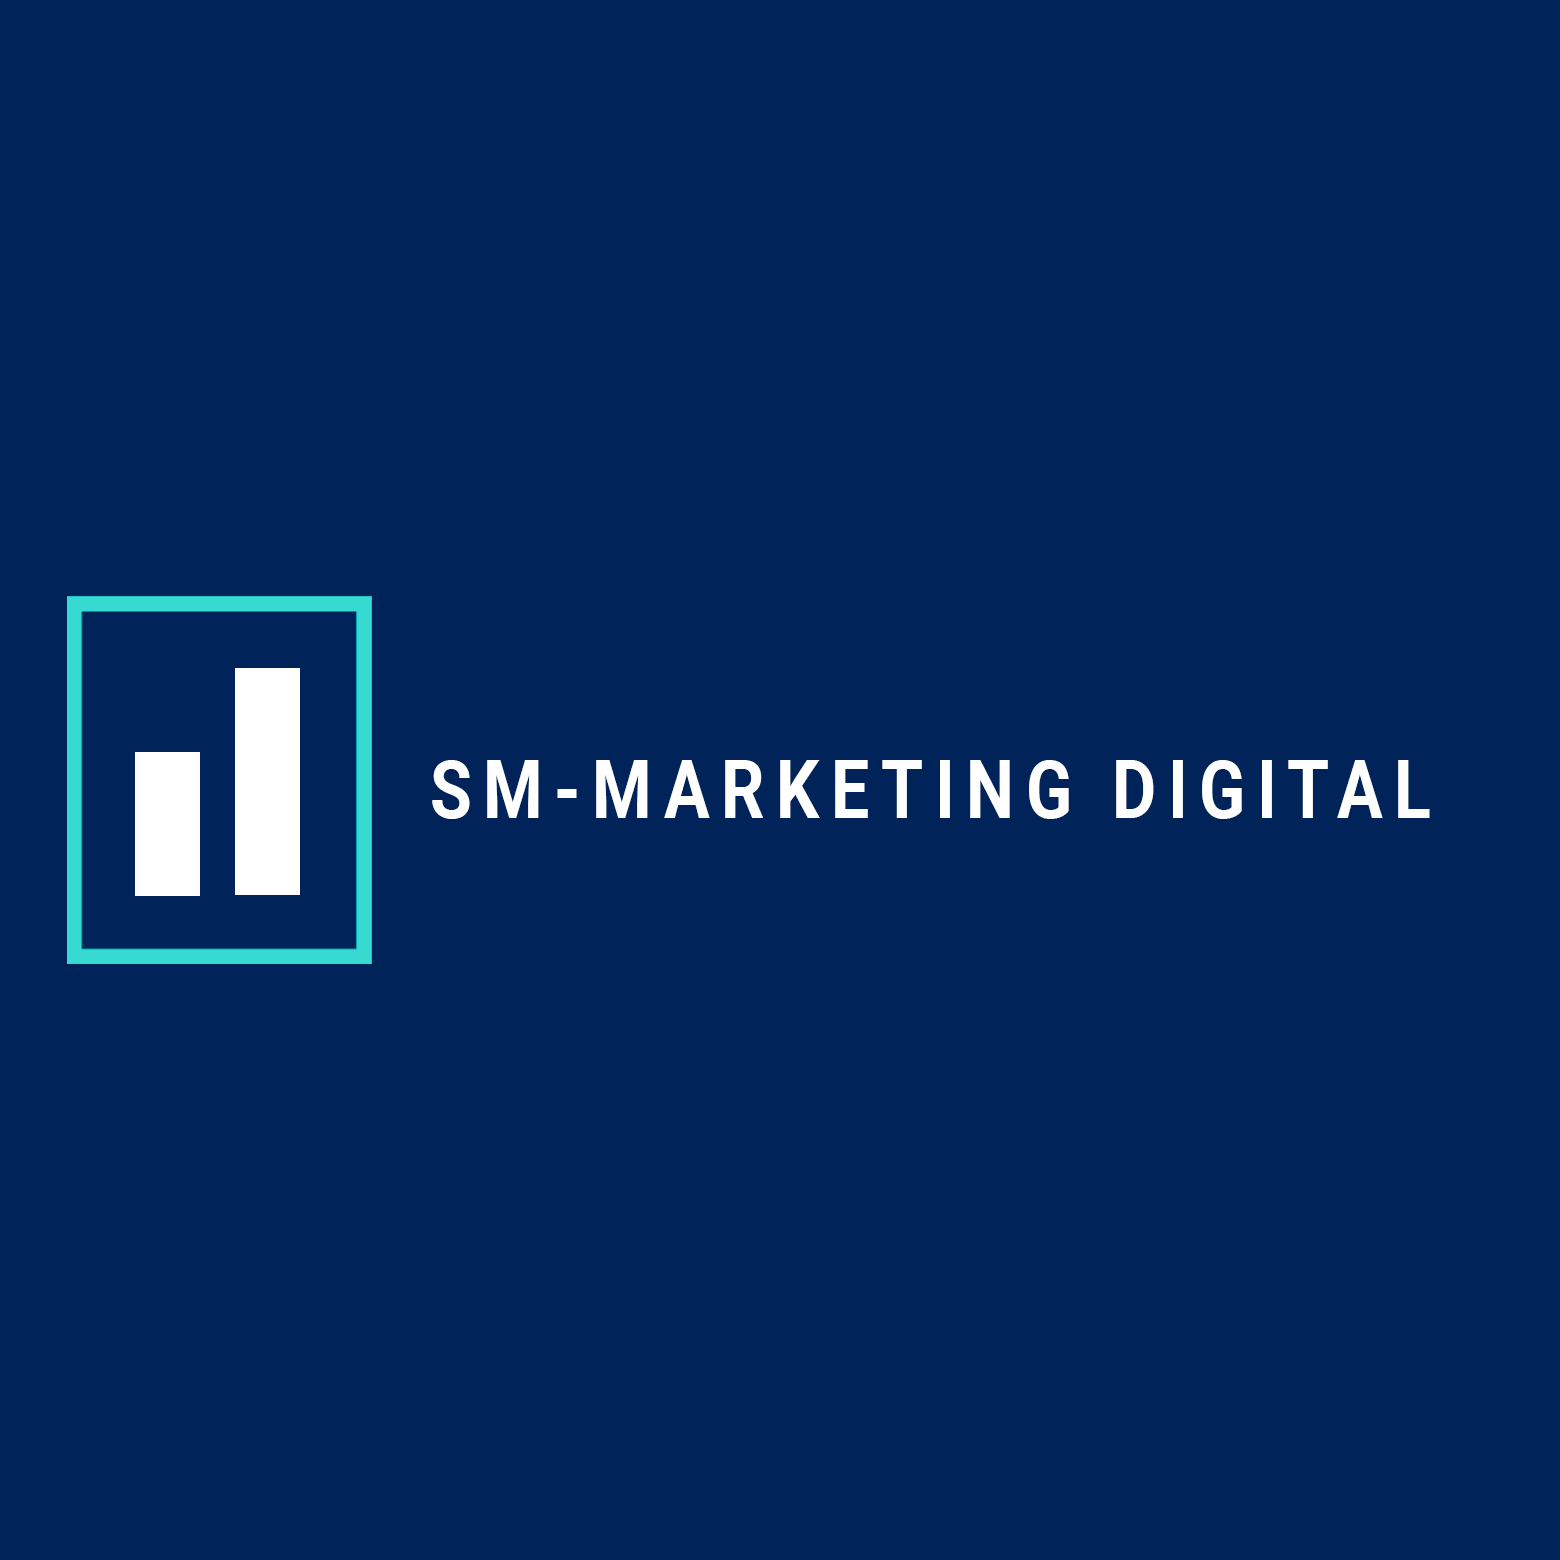 SM - Marketing digital